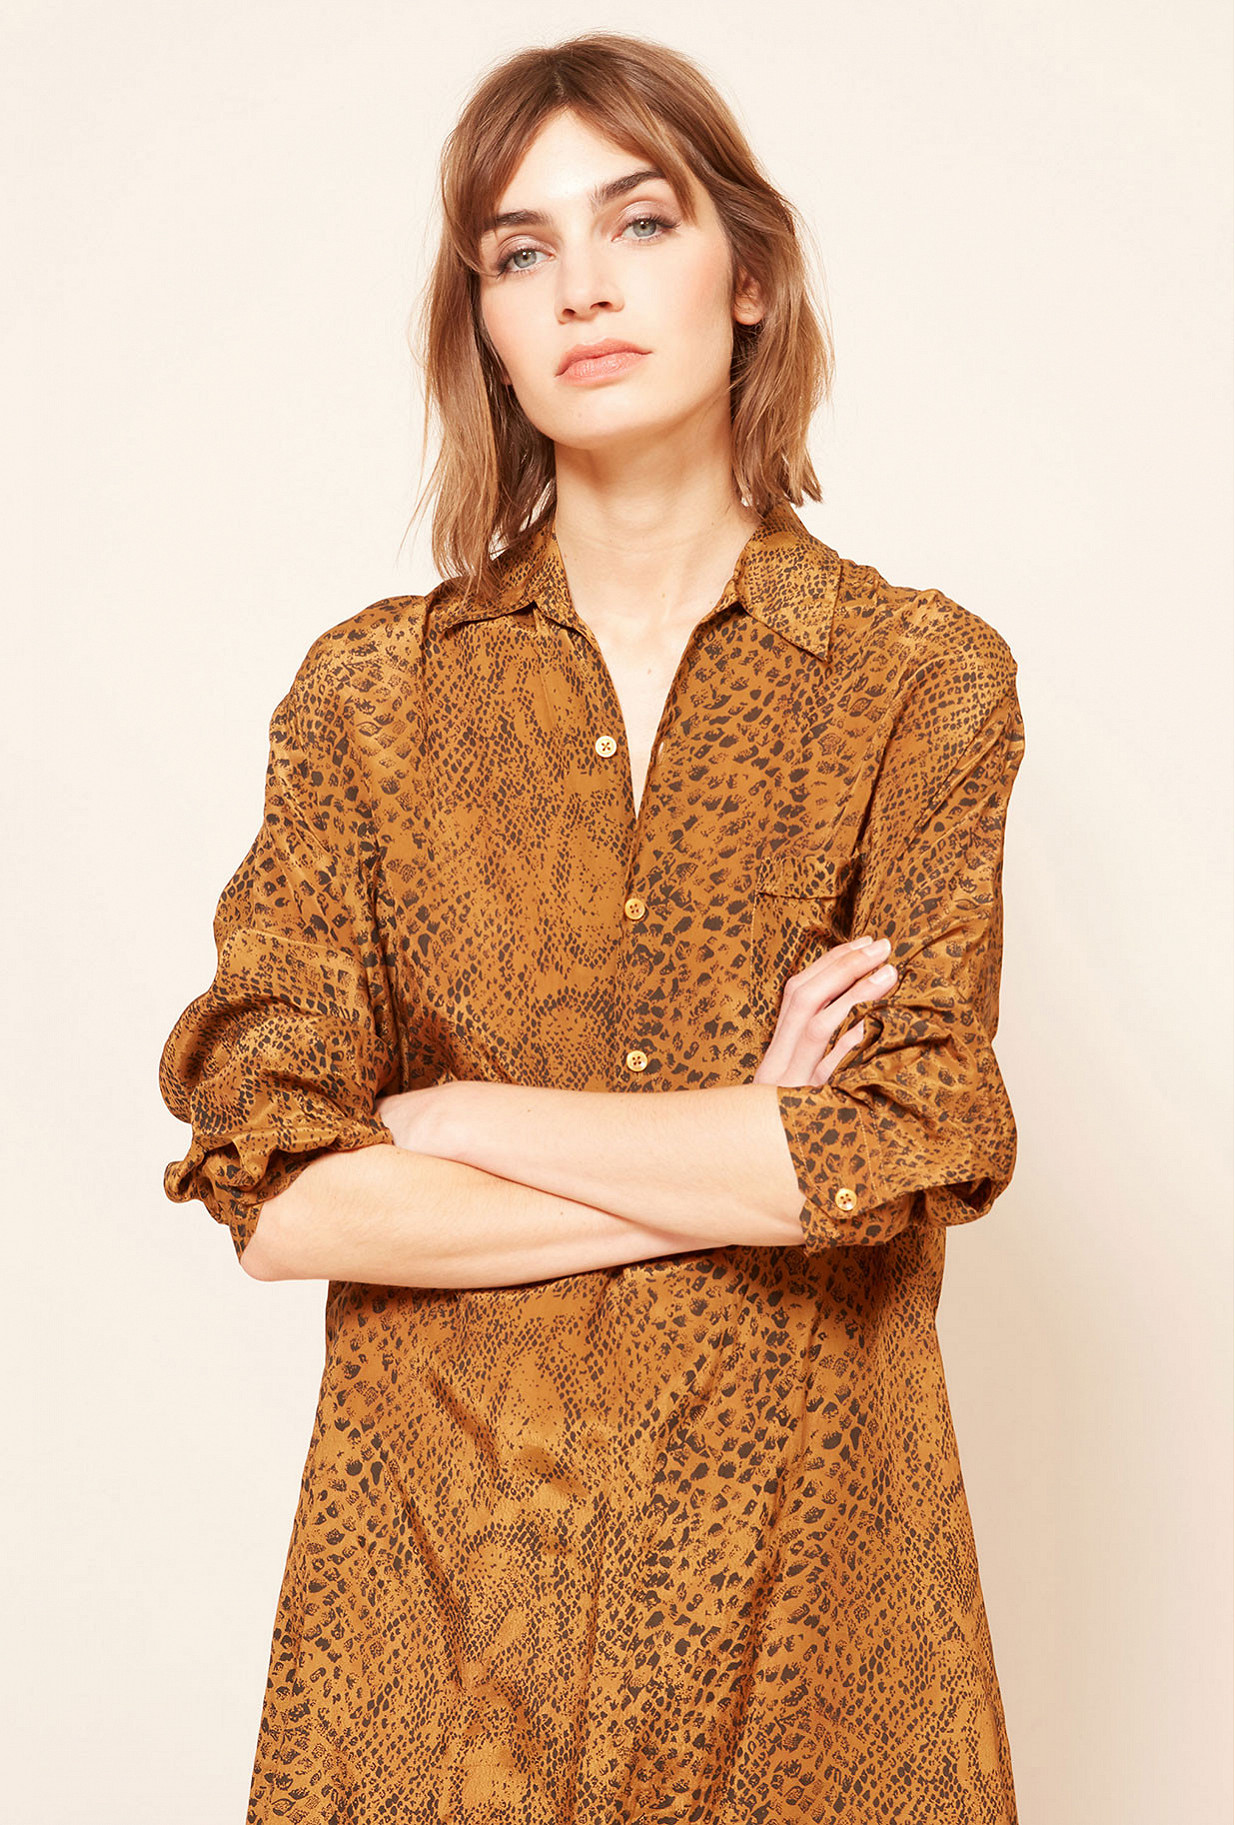 Paris clothes store Shirt  Kaa french designer fashion Paris